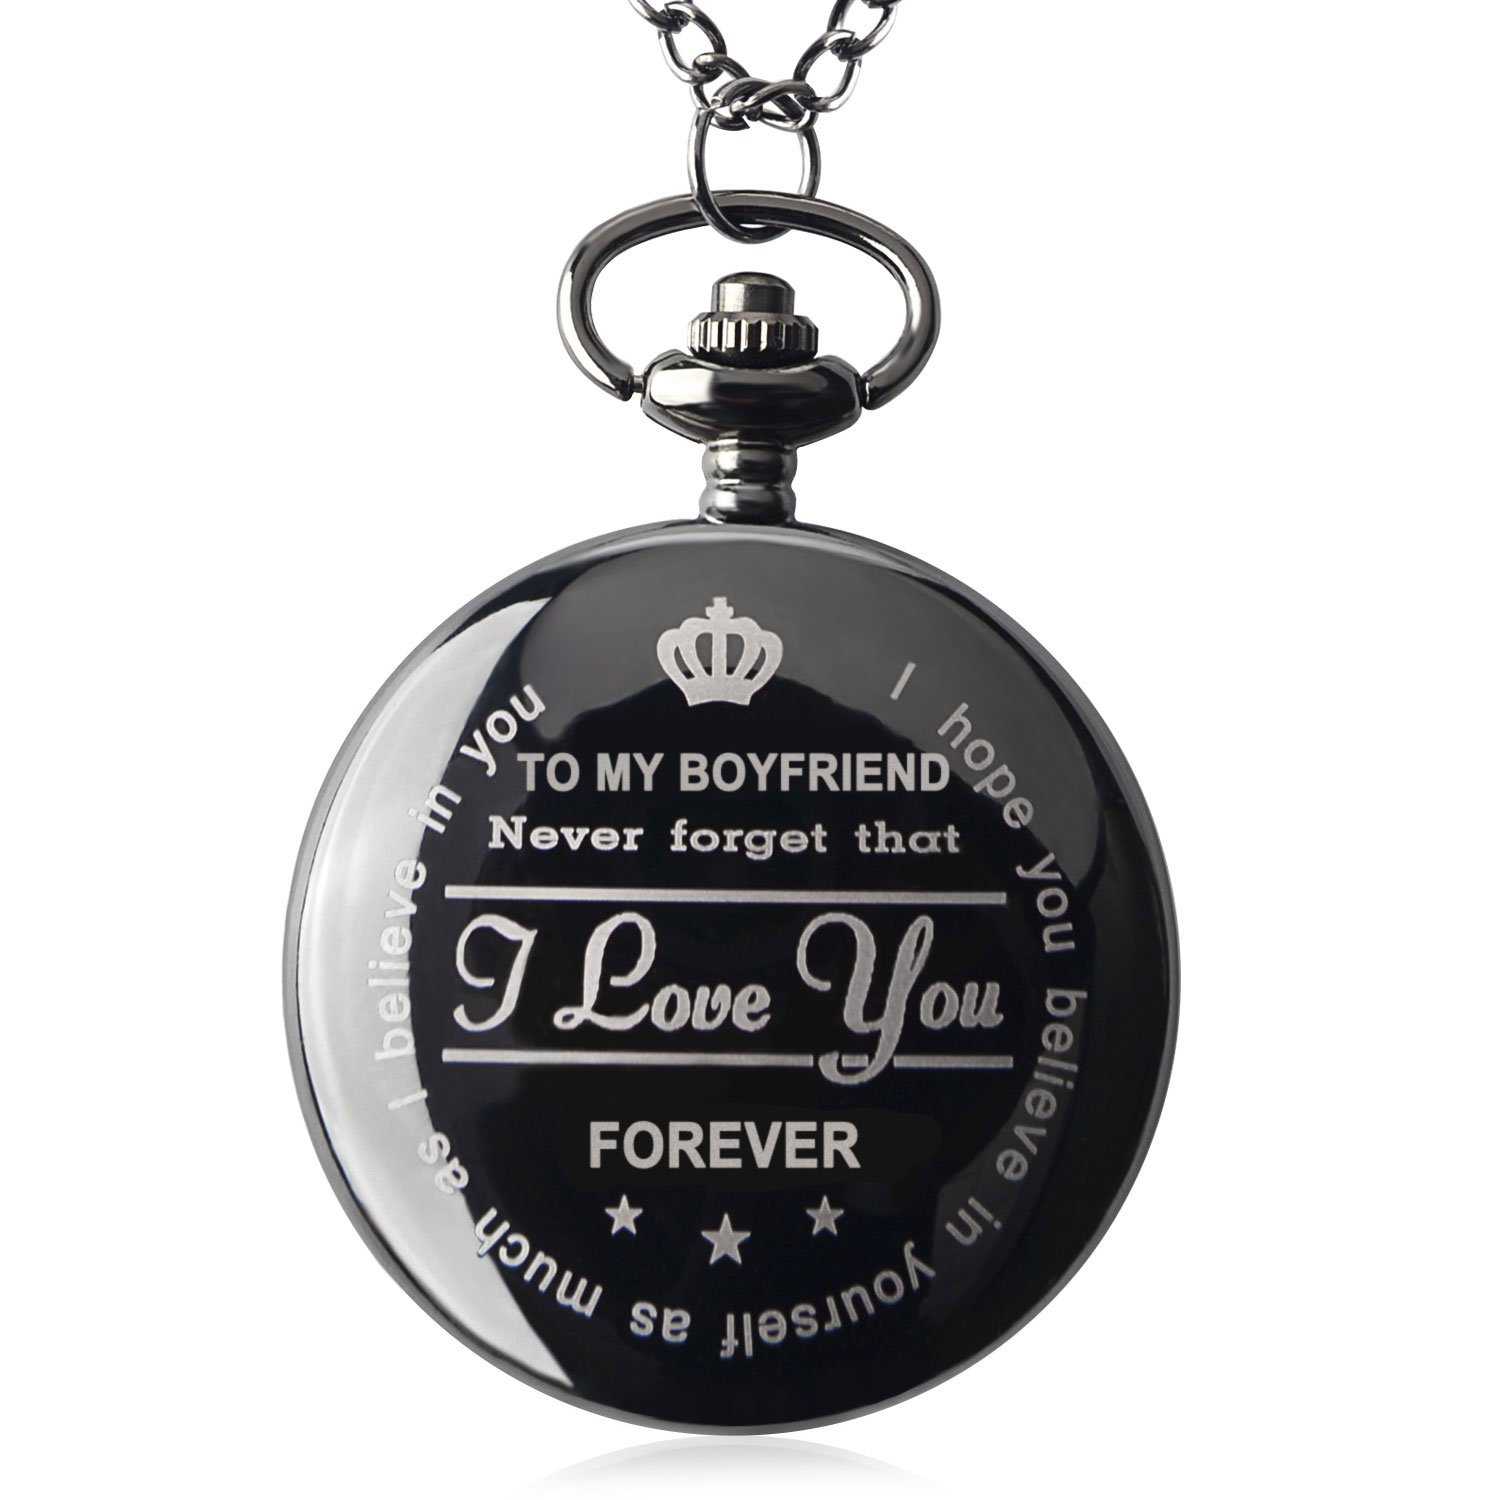 Qise Pocket Watch to My Boyfriend Necklace Chain for Him Surprise Gifts for Men with Black Gift Box (Black Gift for Him)